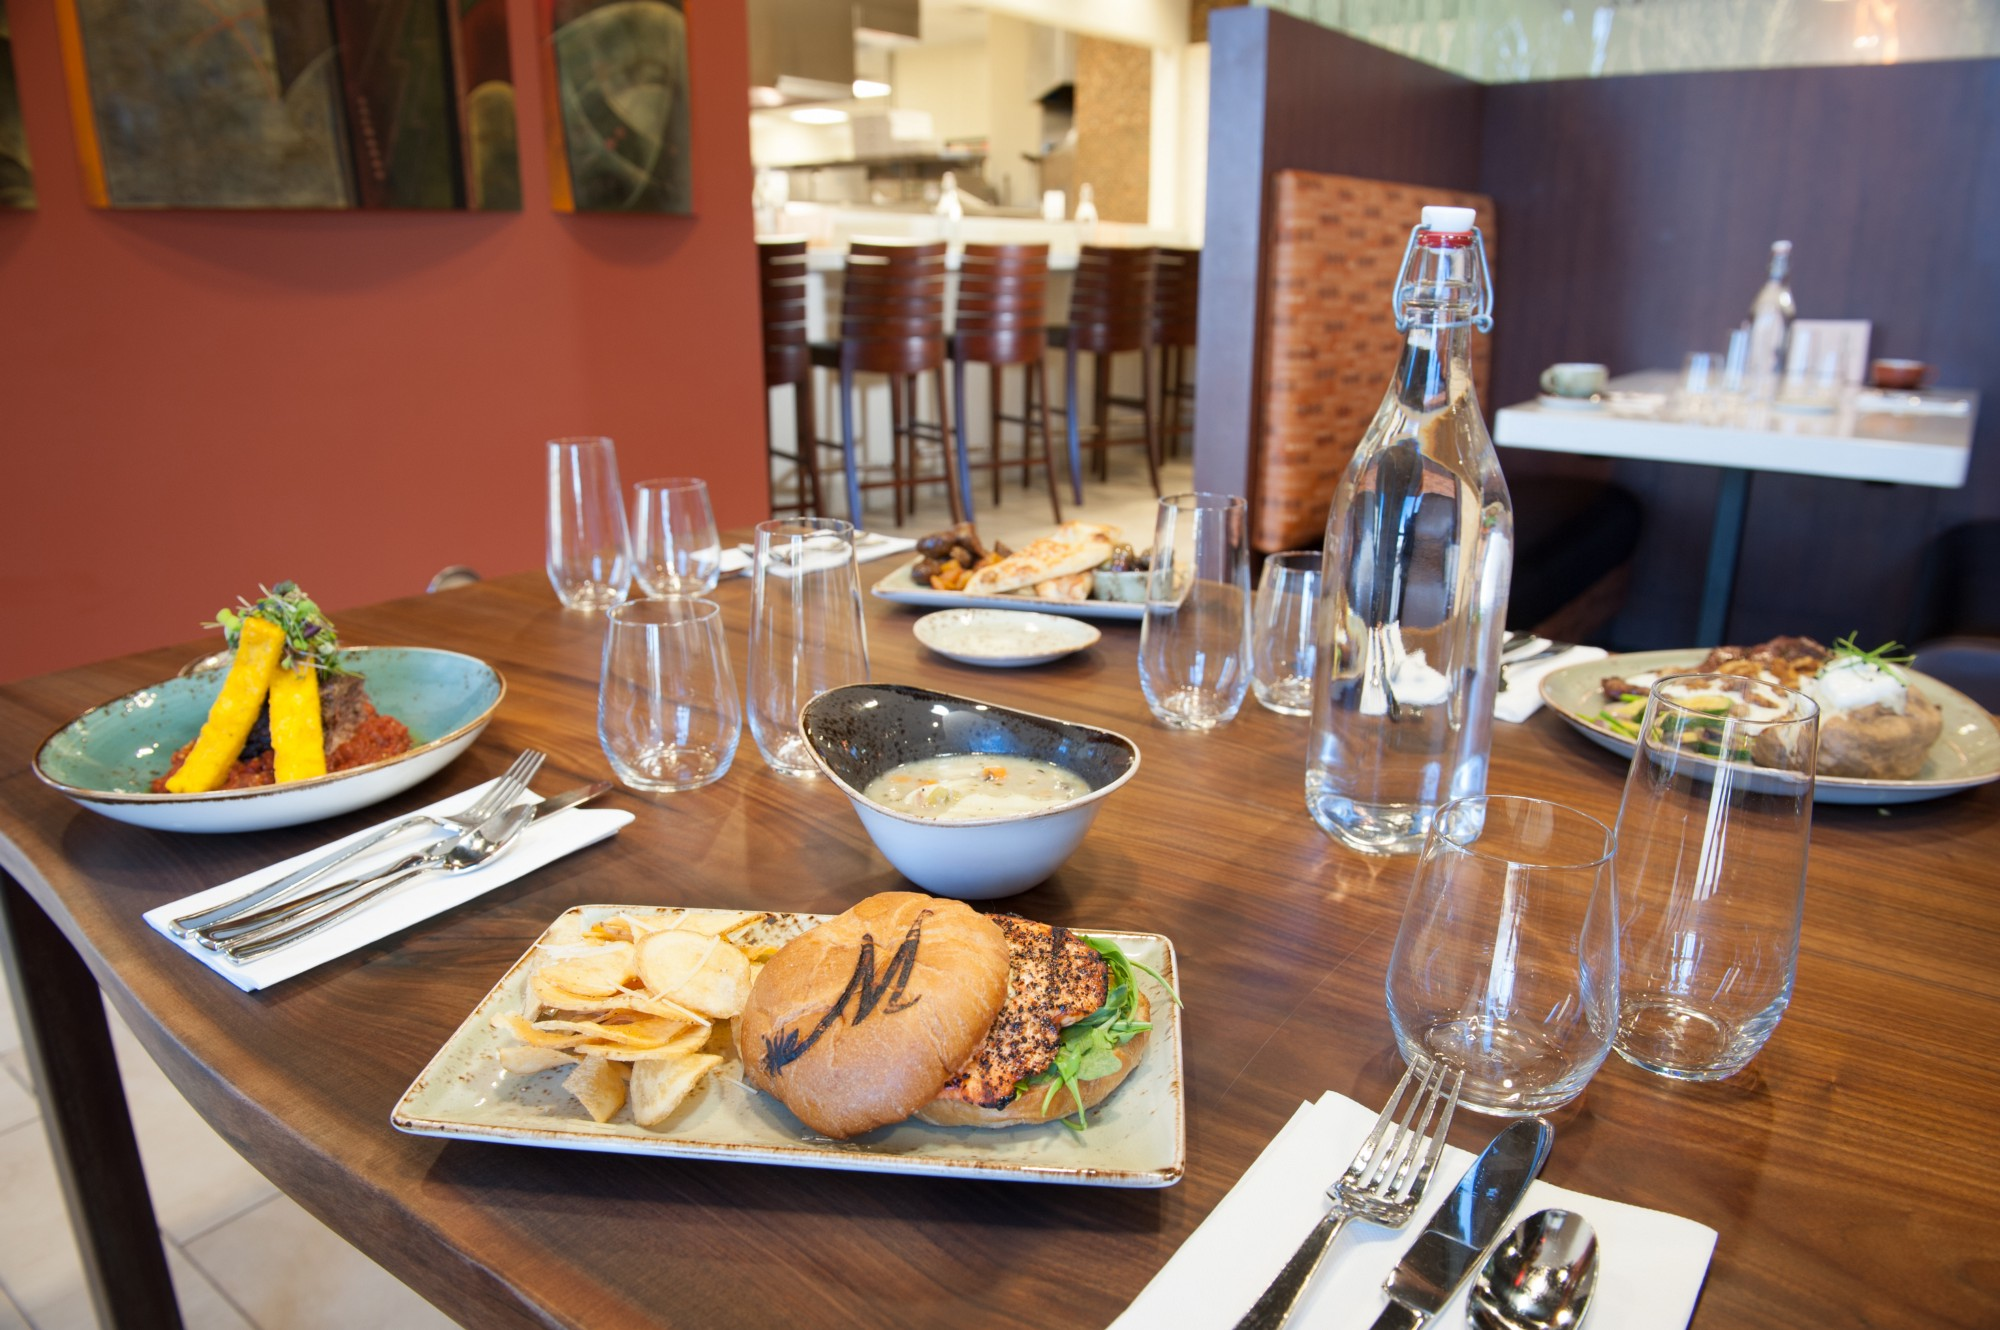 Garden-to-table restaurant attracts locals, wows patients